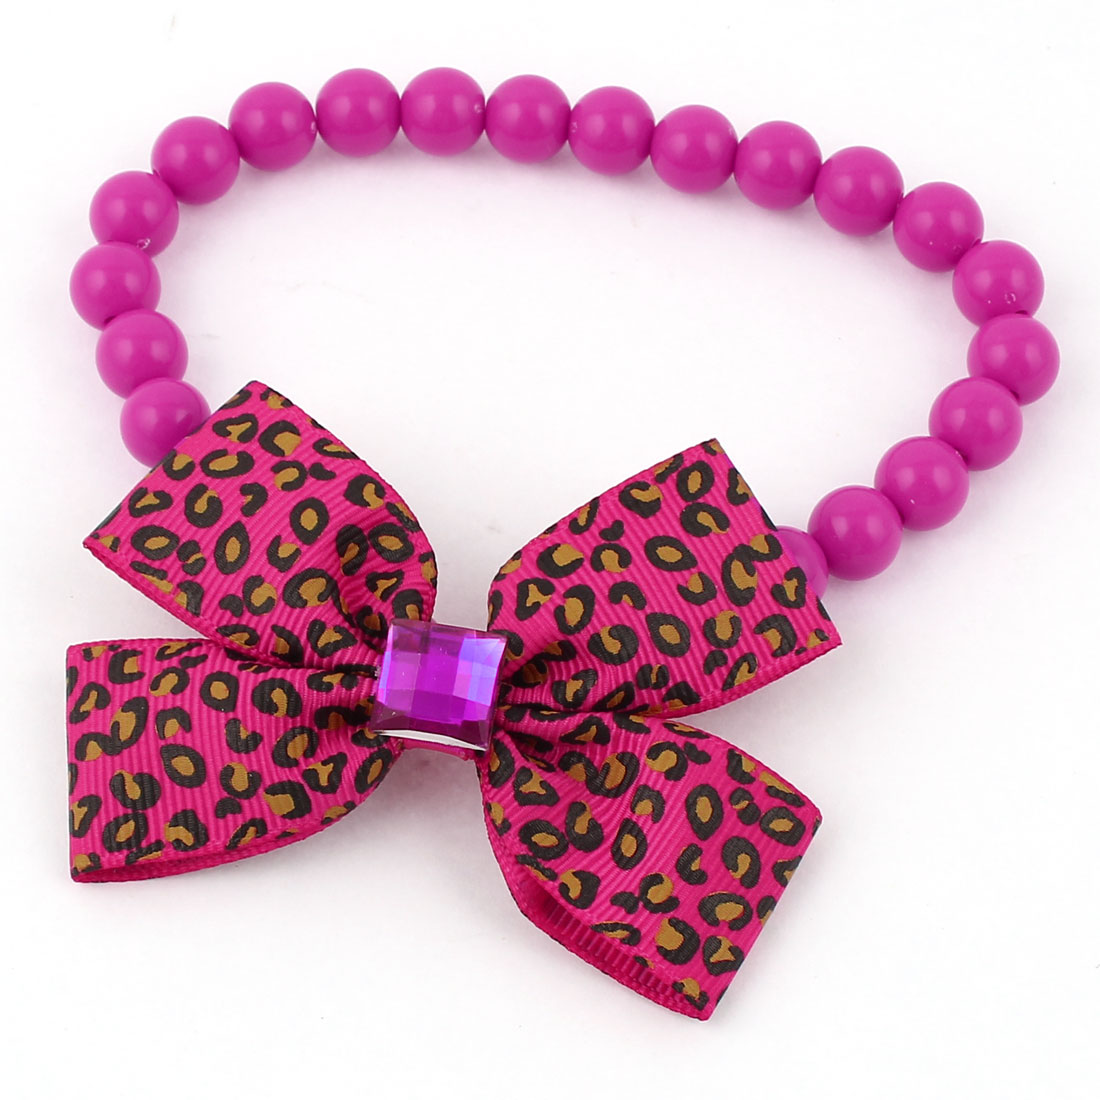 Faux Crystal Bowtie Accent Pet Dog Plastic Beads Collar Necklace Fuchsia XS